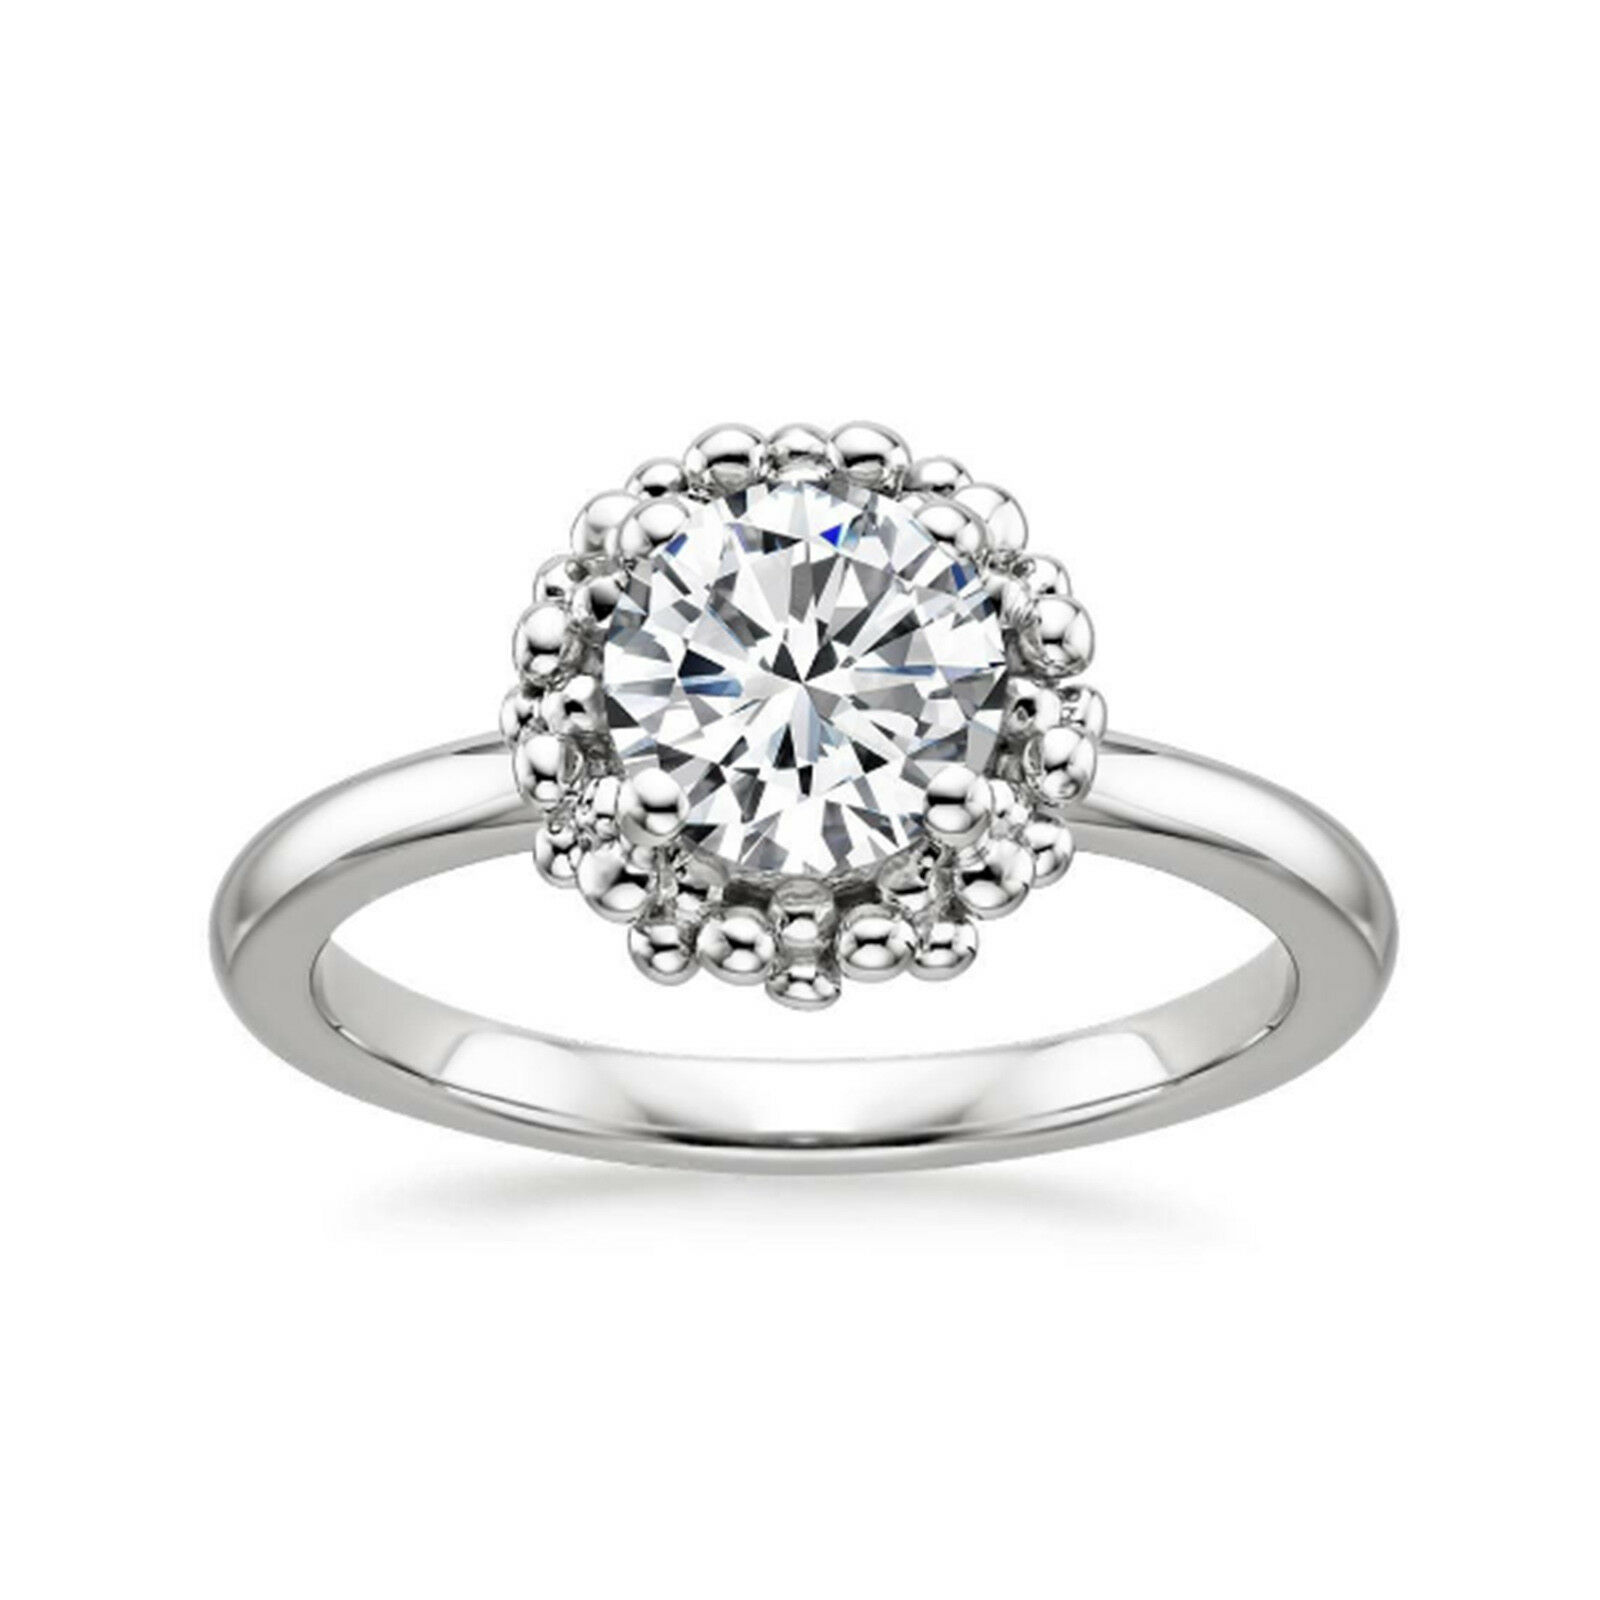 1.00 Ct Round Cut Diamond VVS1 D 14K Solid White gold Engagement Ring Size 5 6 7